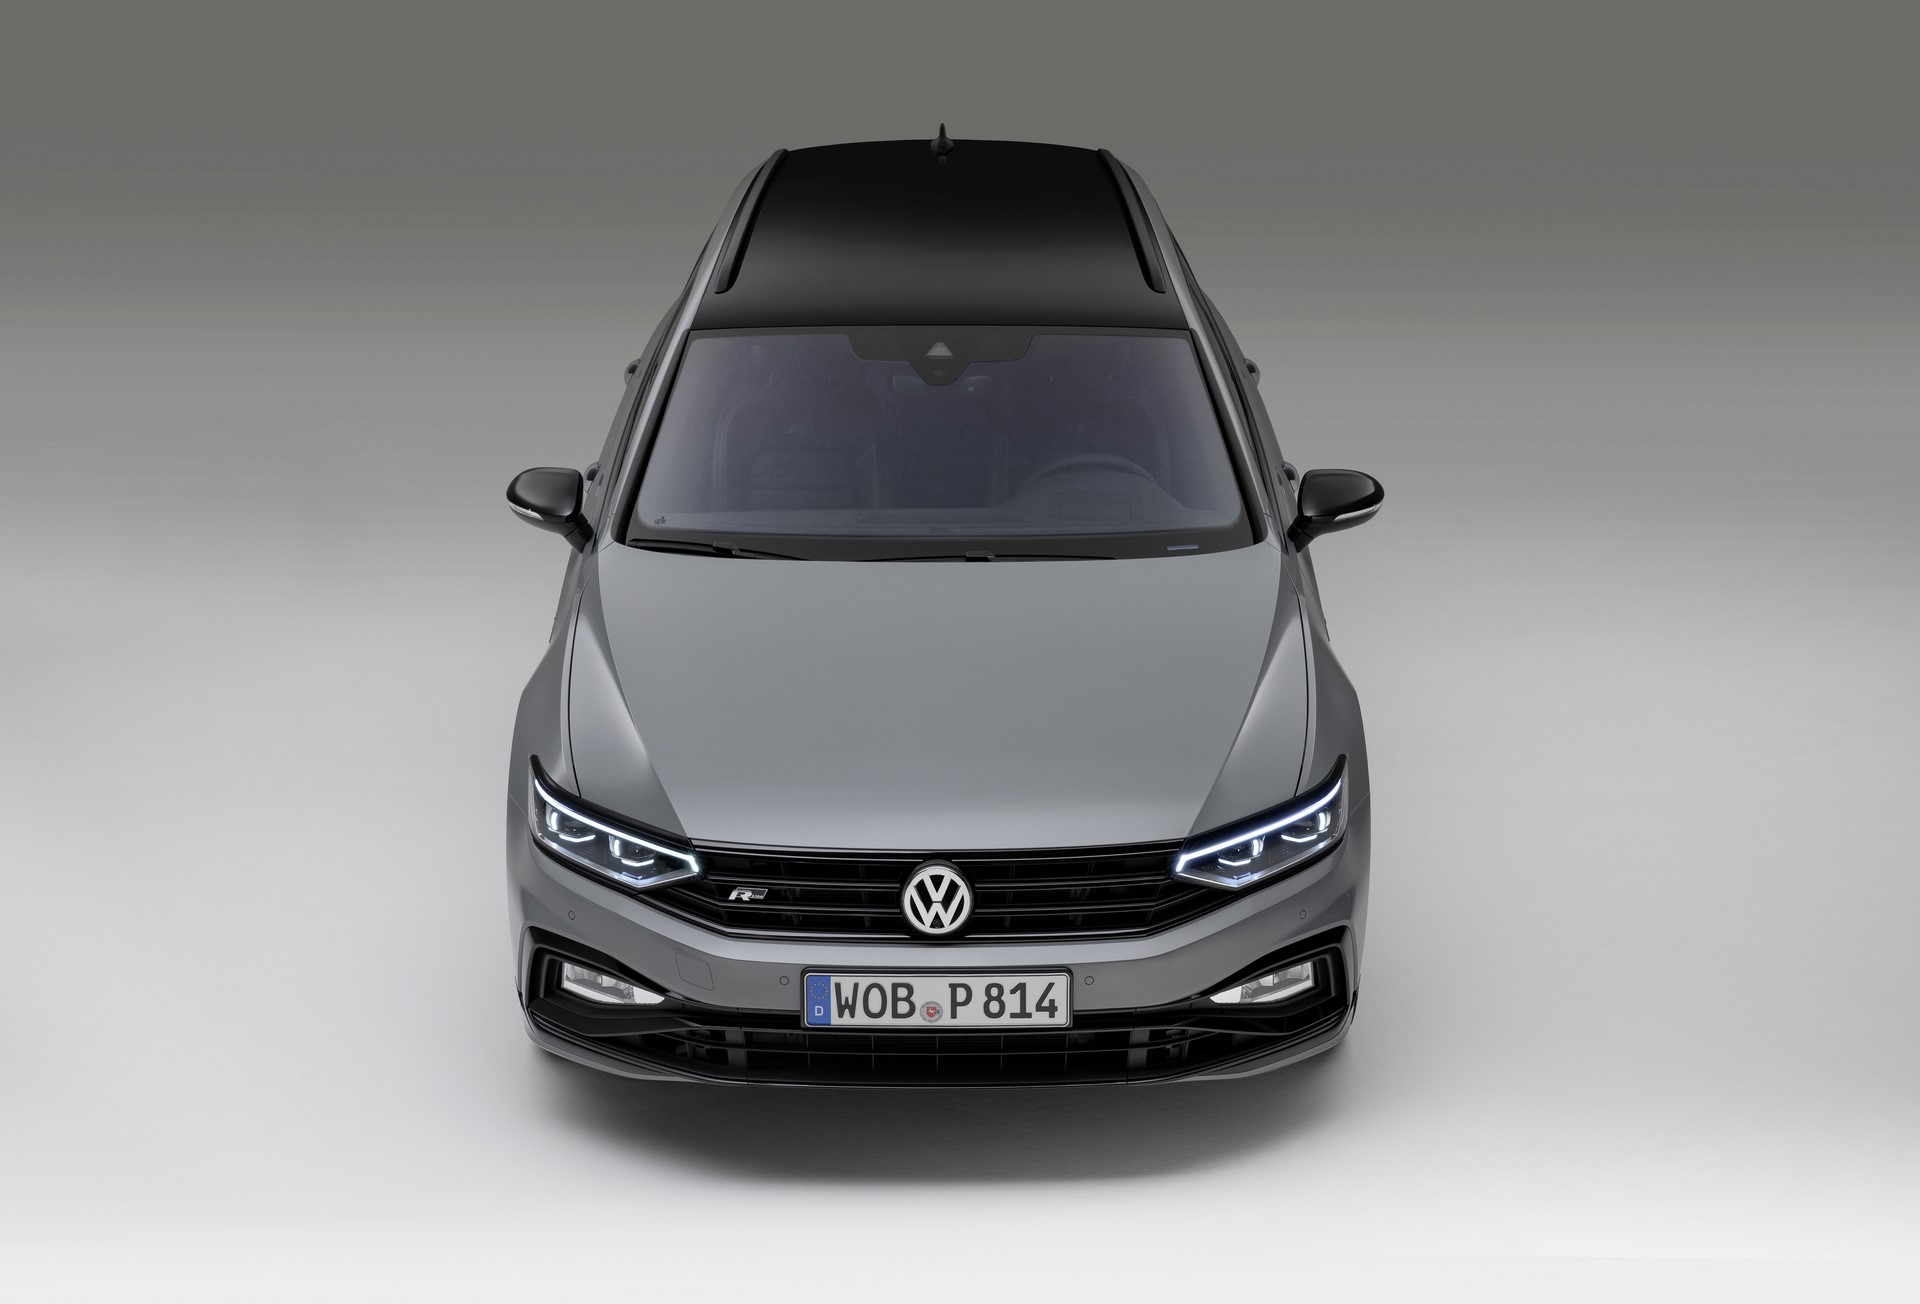 The new Volkswagen Passat Variant R-Line Edition